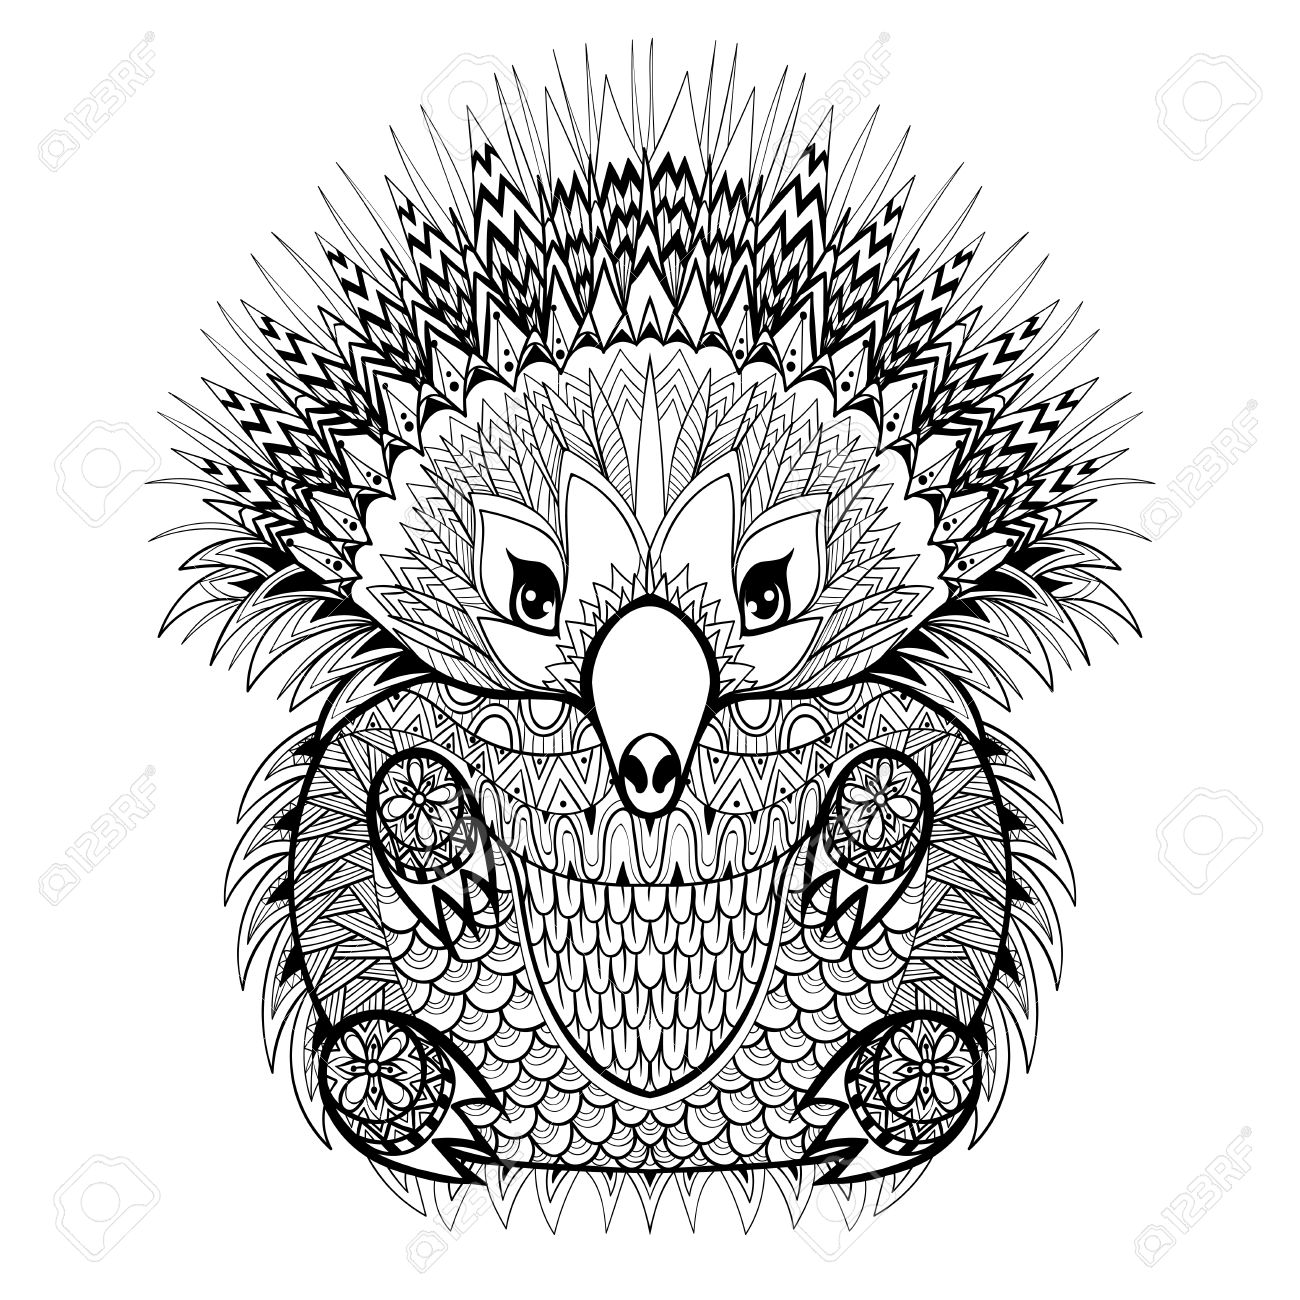 Hand Drawn Echidna Australian Animal Illustration For Antistress Coloring Page With High Details Isolated On